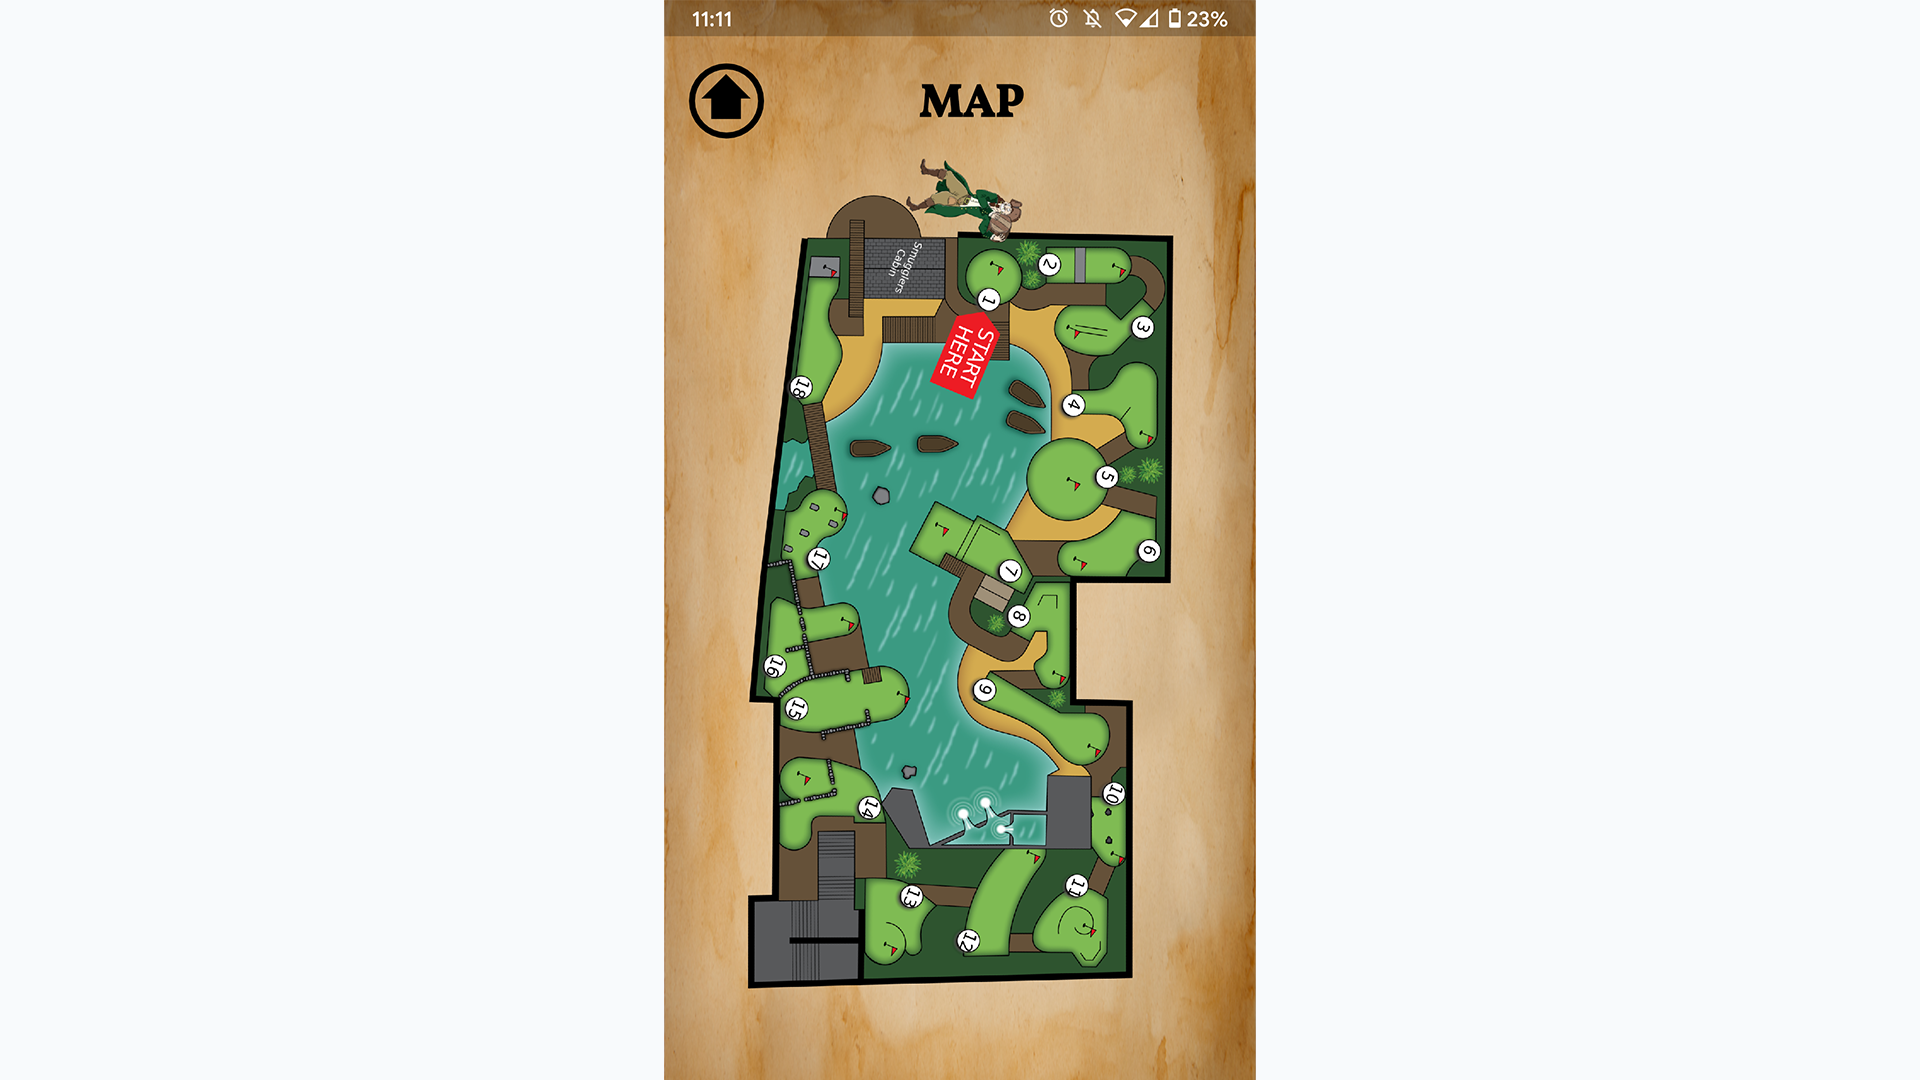 Map of the smugglers cove course on the app